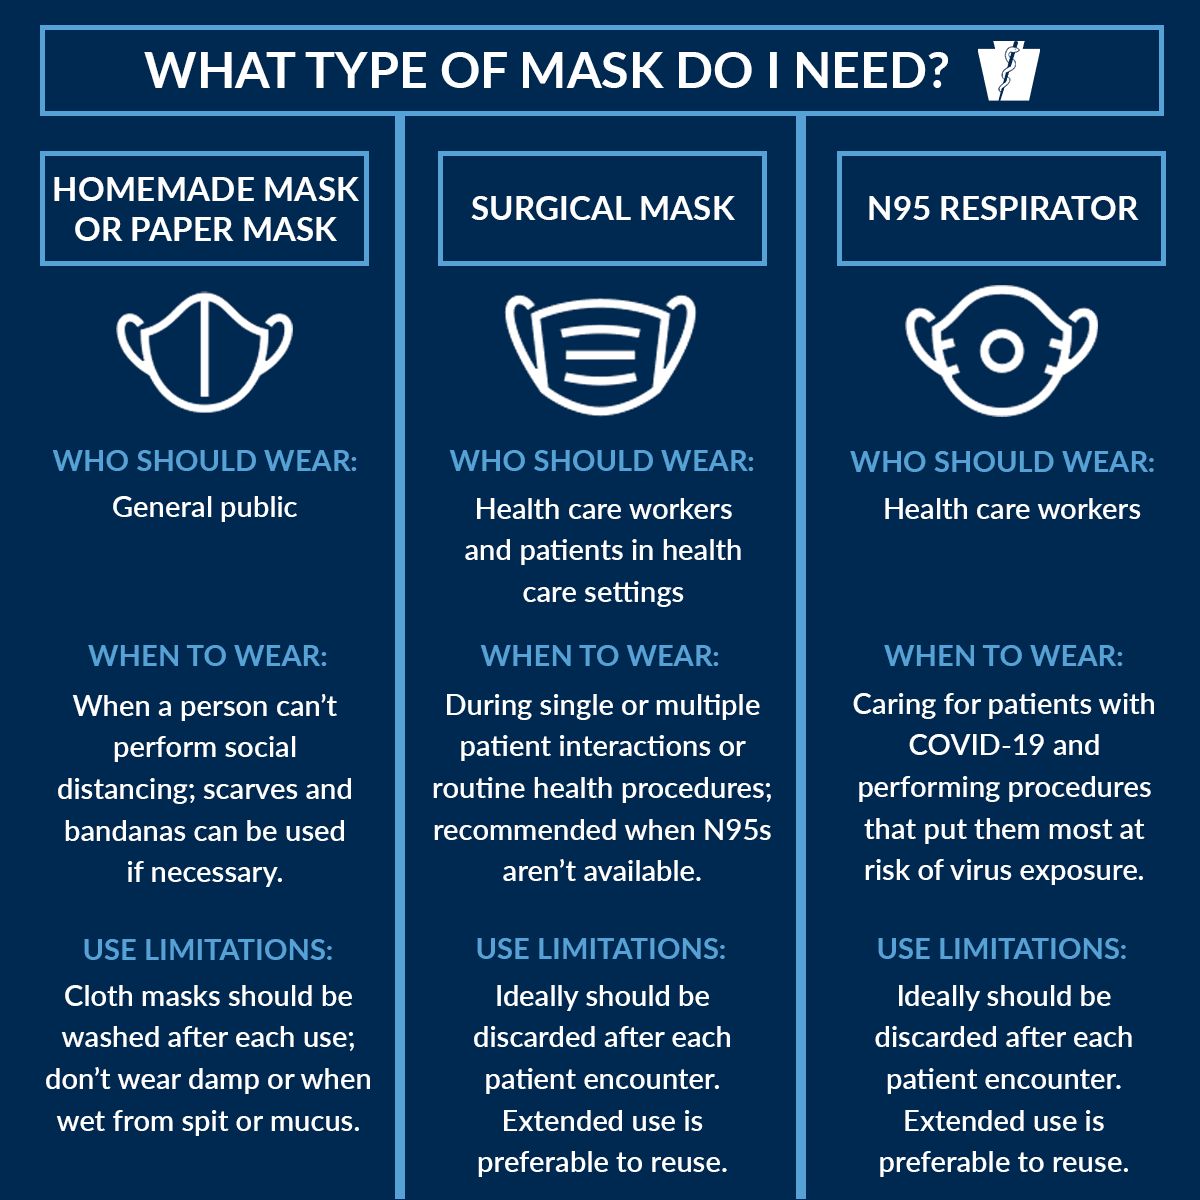 What type of mask do I need